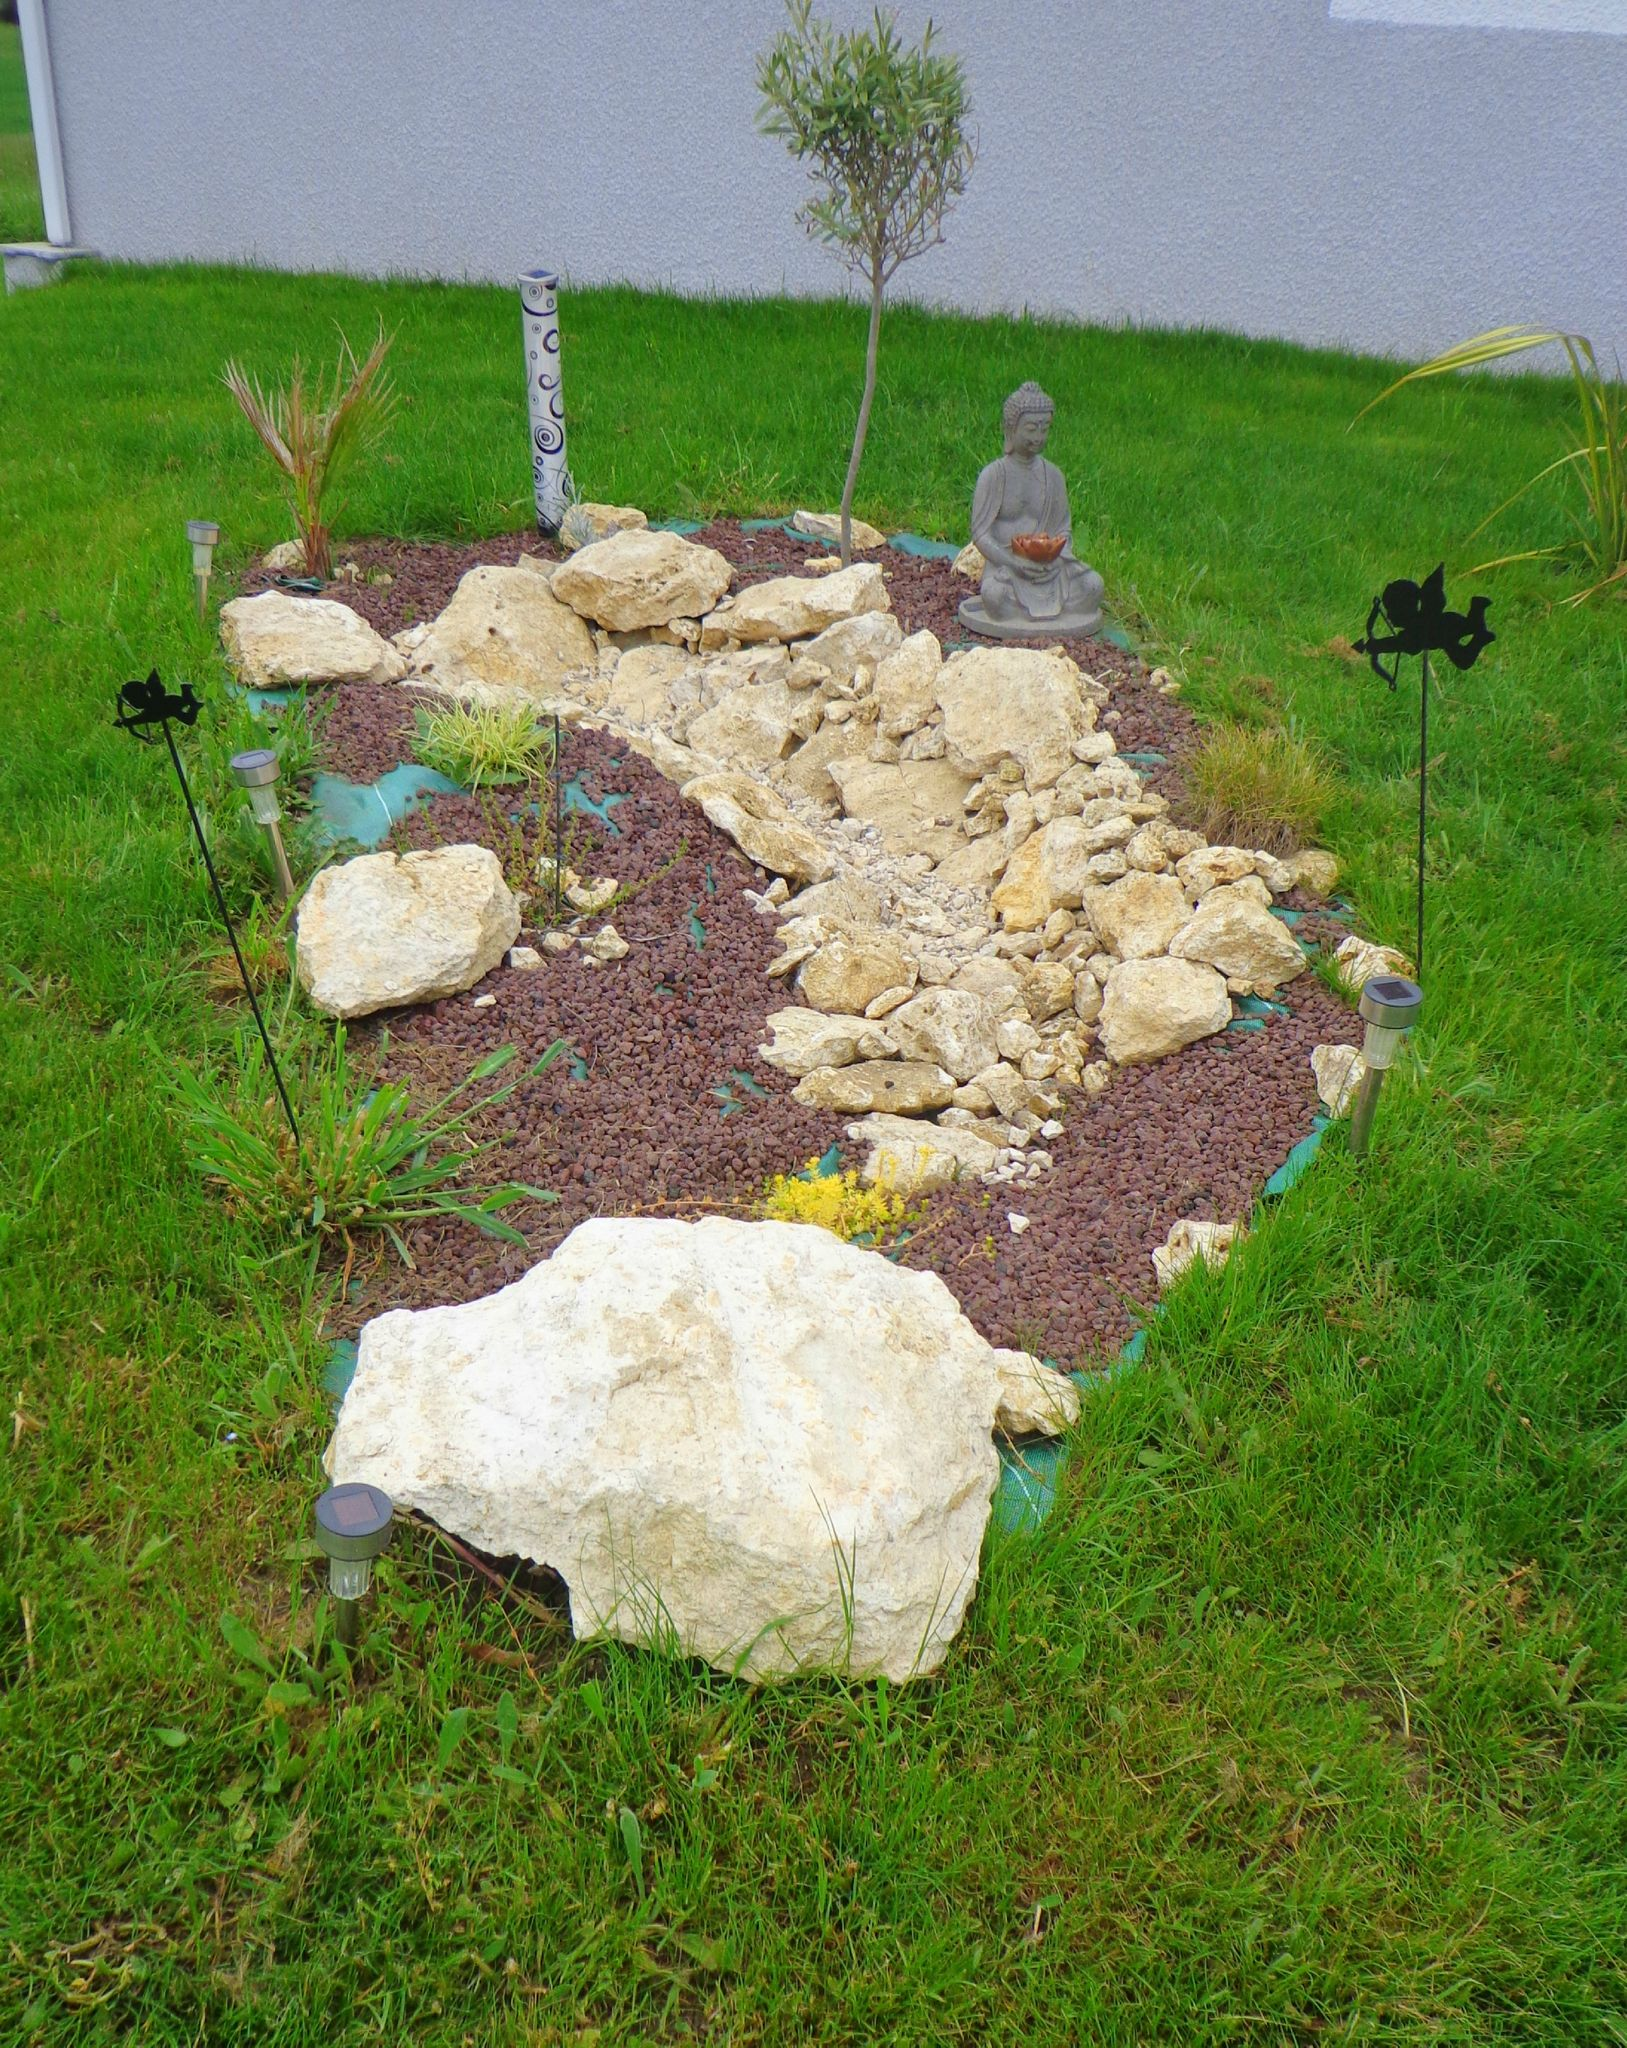 D coration de jardin recyclage et cr ation for Jardin creation